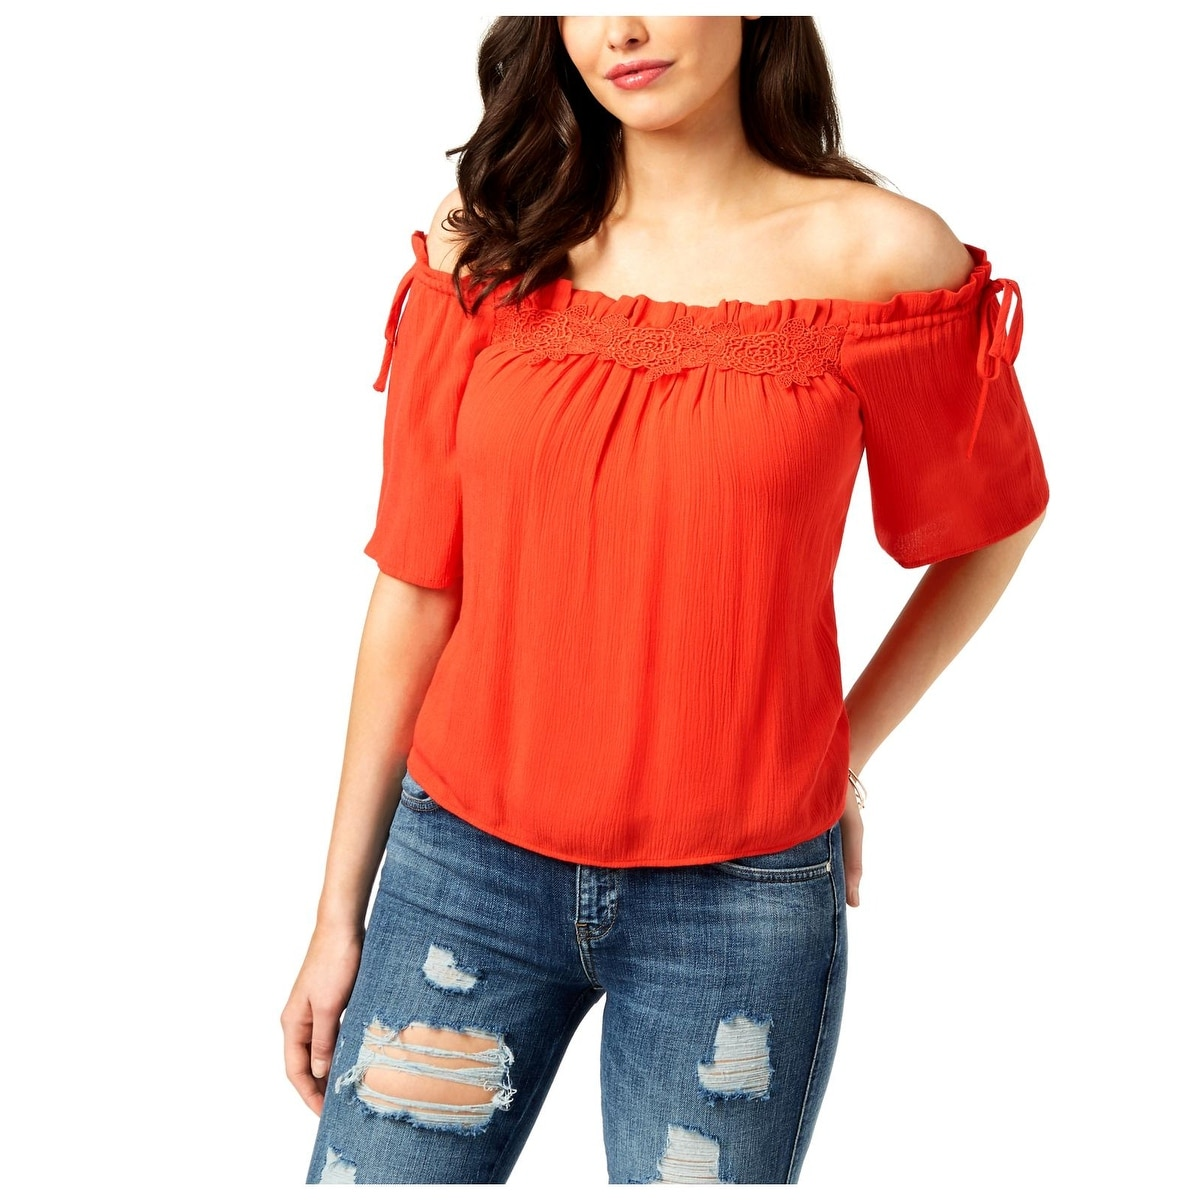 47138d4f2b9f56 Guess Tops | Find Great Women's Clothing Deals Shopping at Overstock